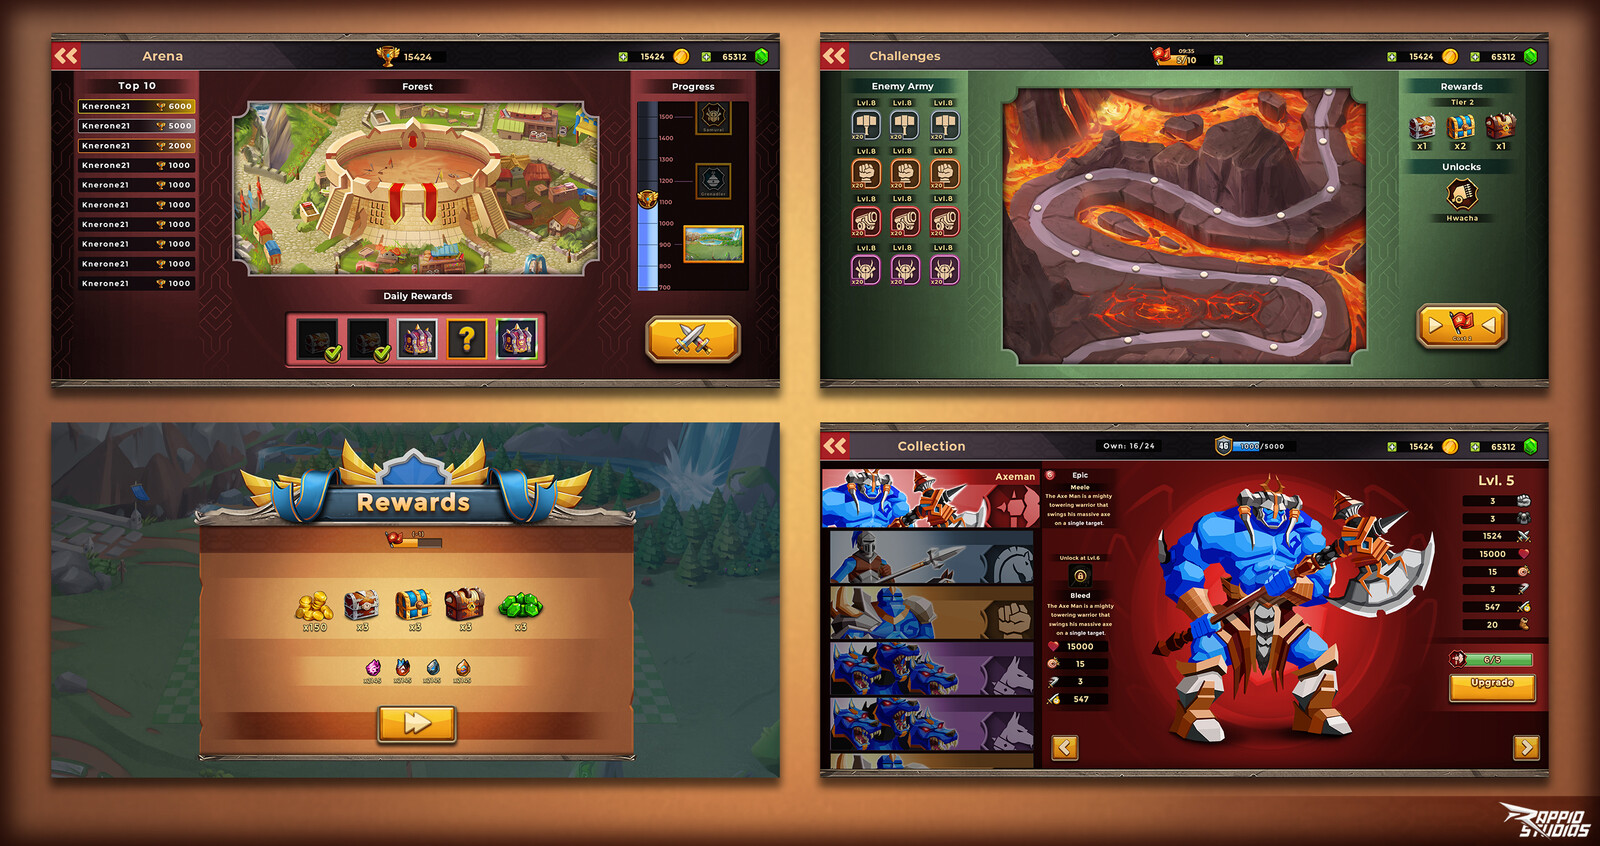 various screens UI and UX